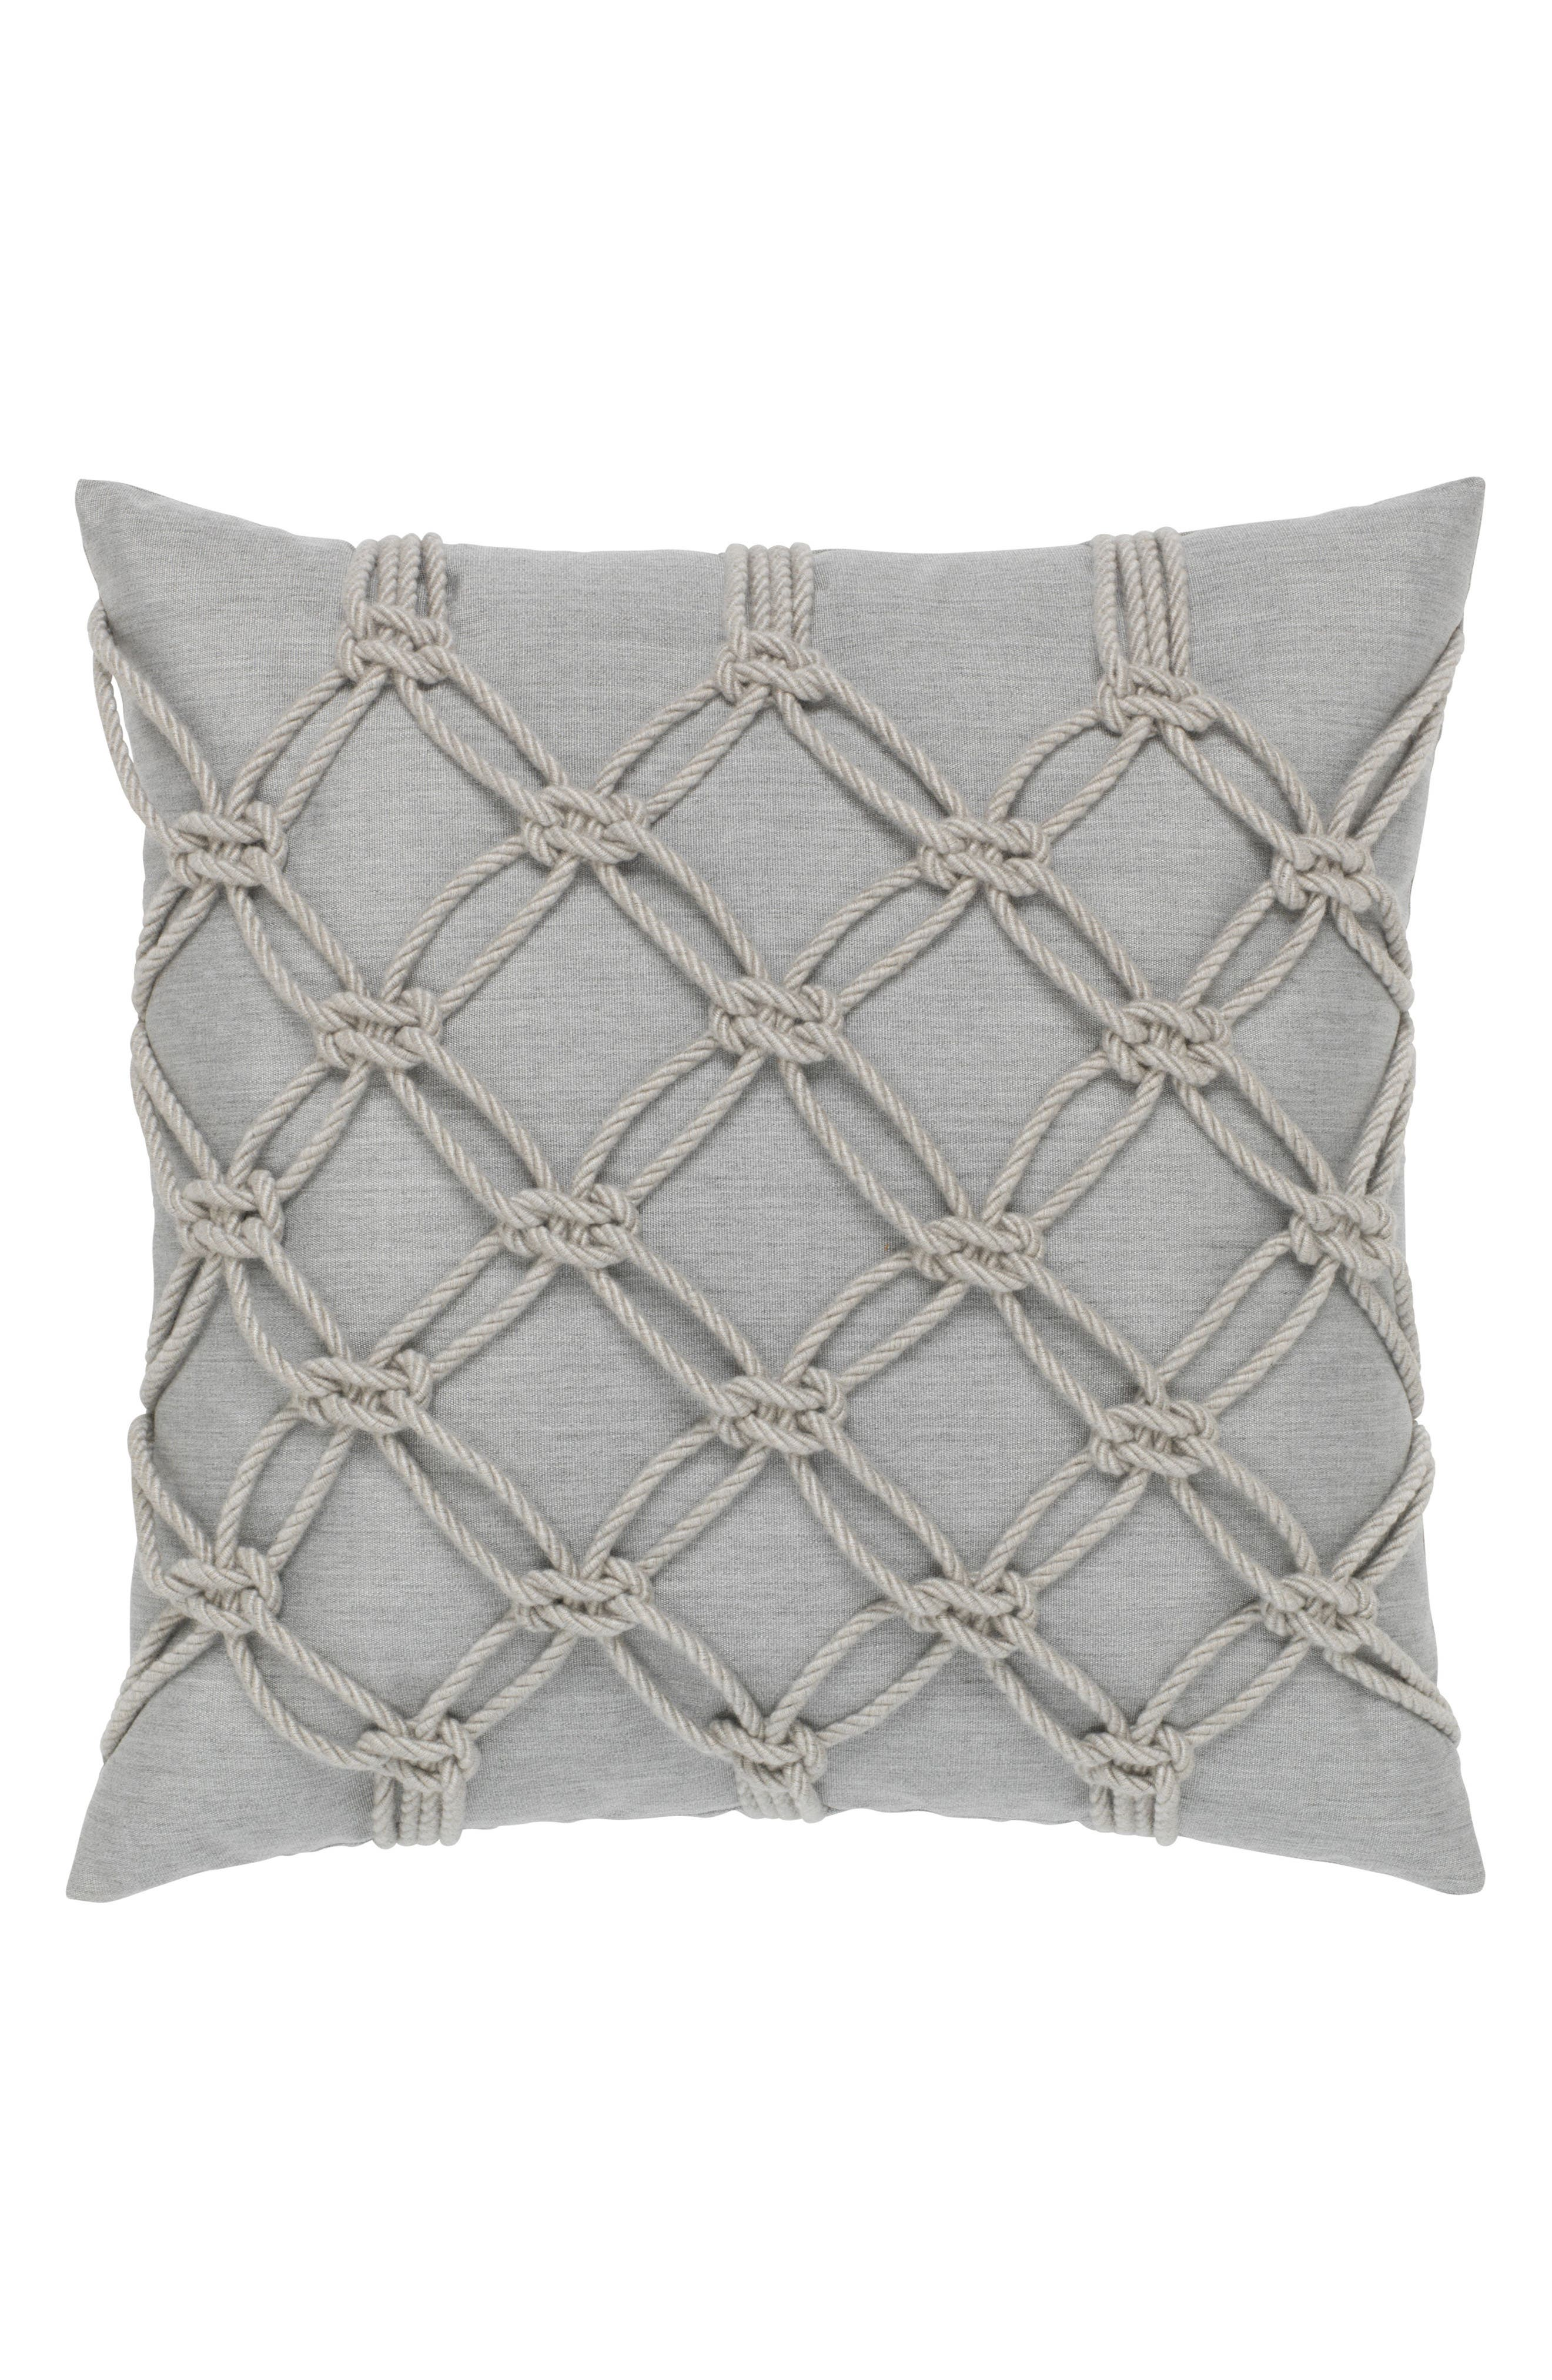 Granite Rope Indoor/Outdoor Accent Pillow,                             Main thumbnail 1, color,                             020